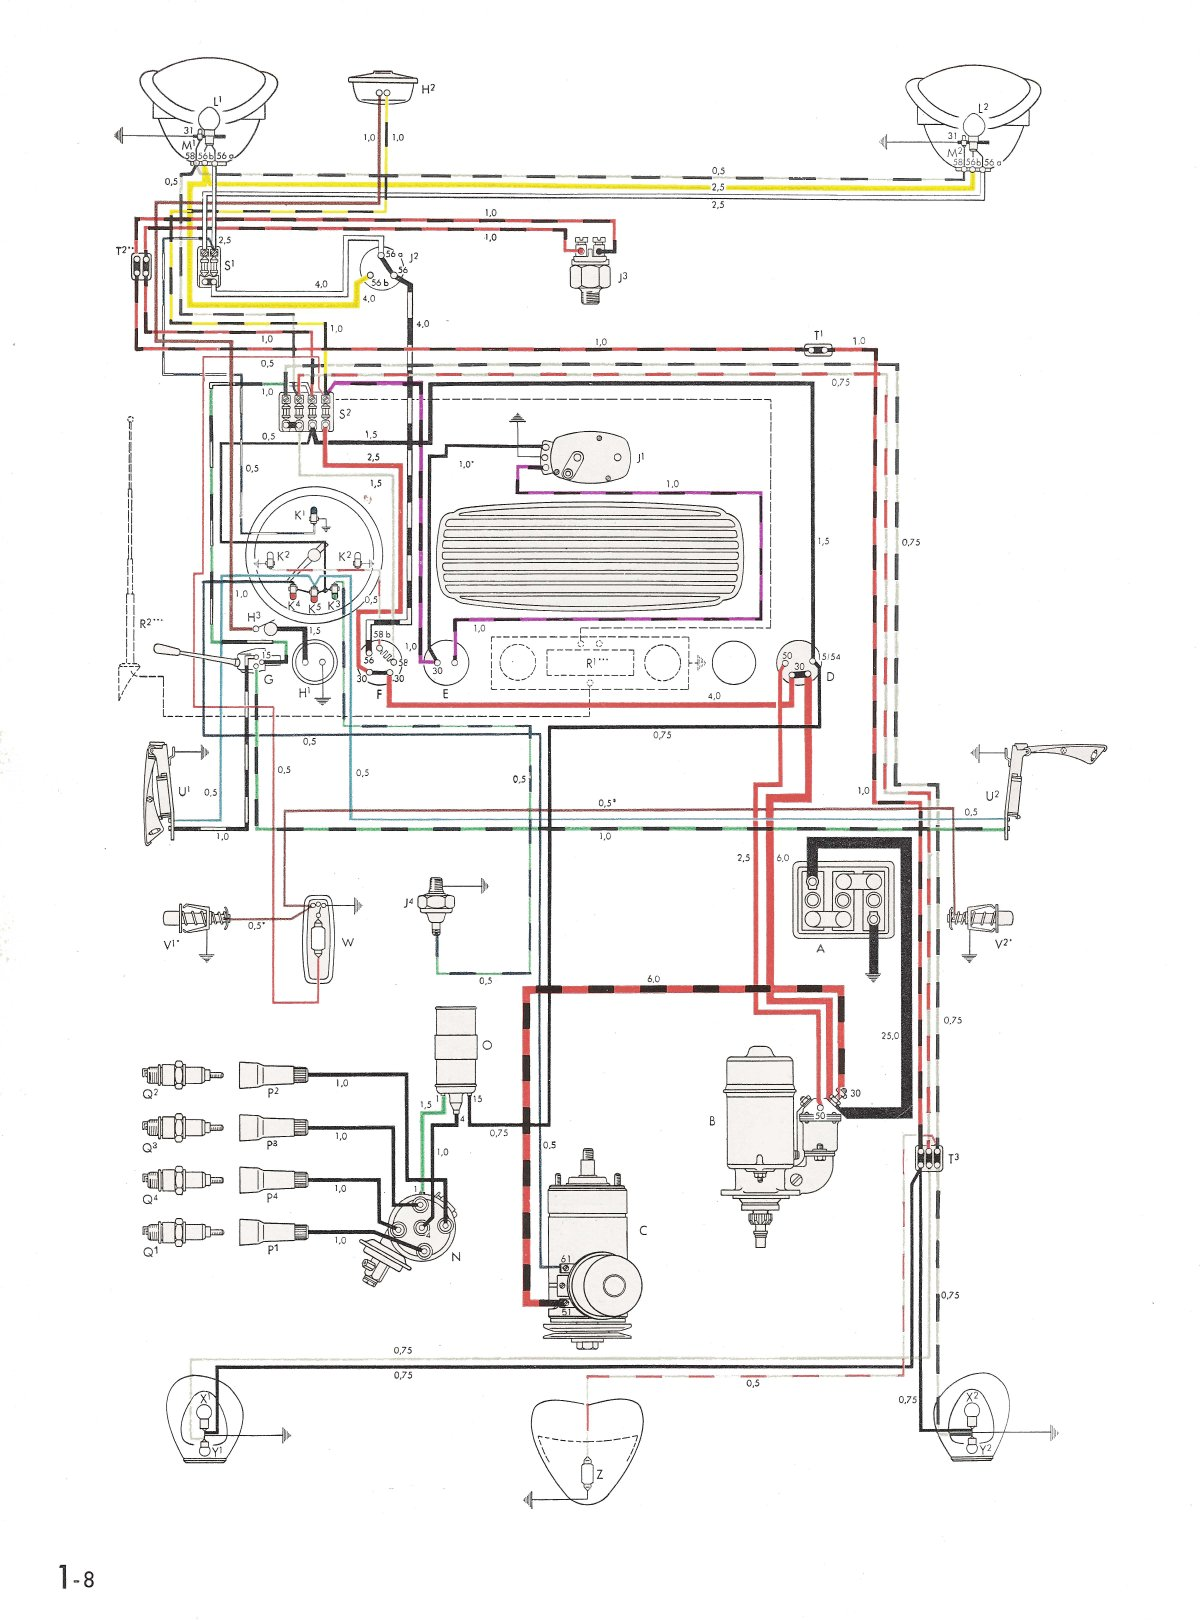 bug54 thesamba com type 1 wiring diagrams vw golf 3 electrical wiring diagram at webbmarketing.co